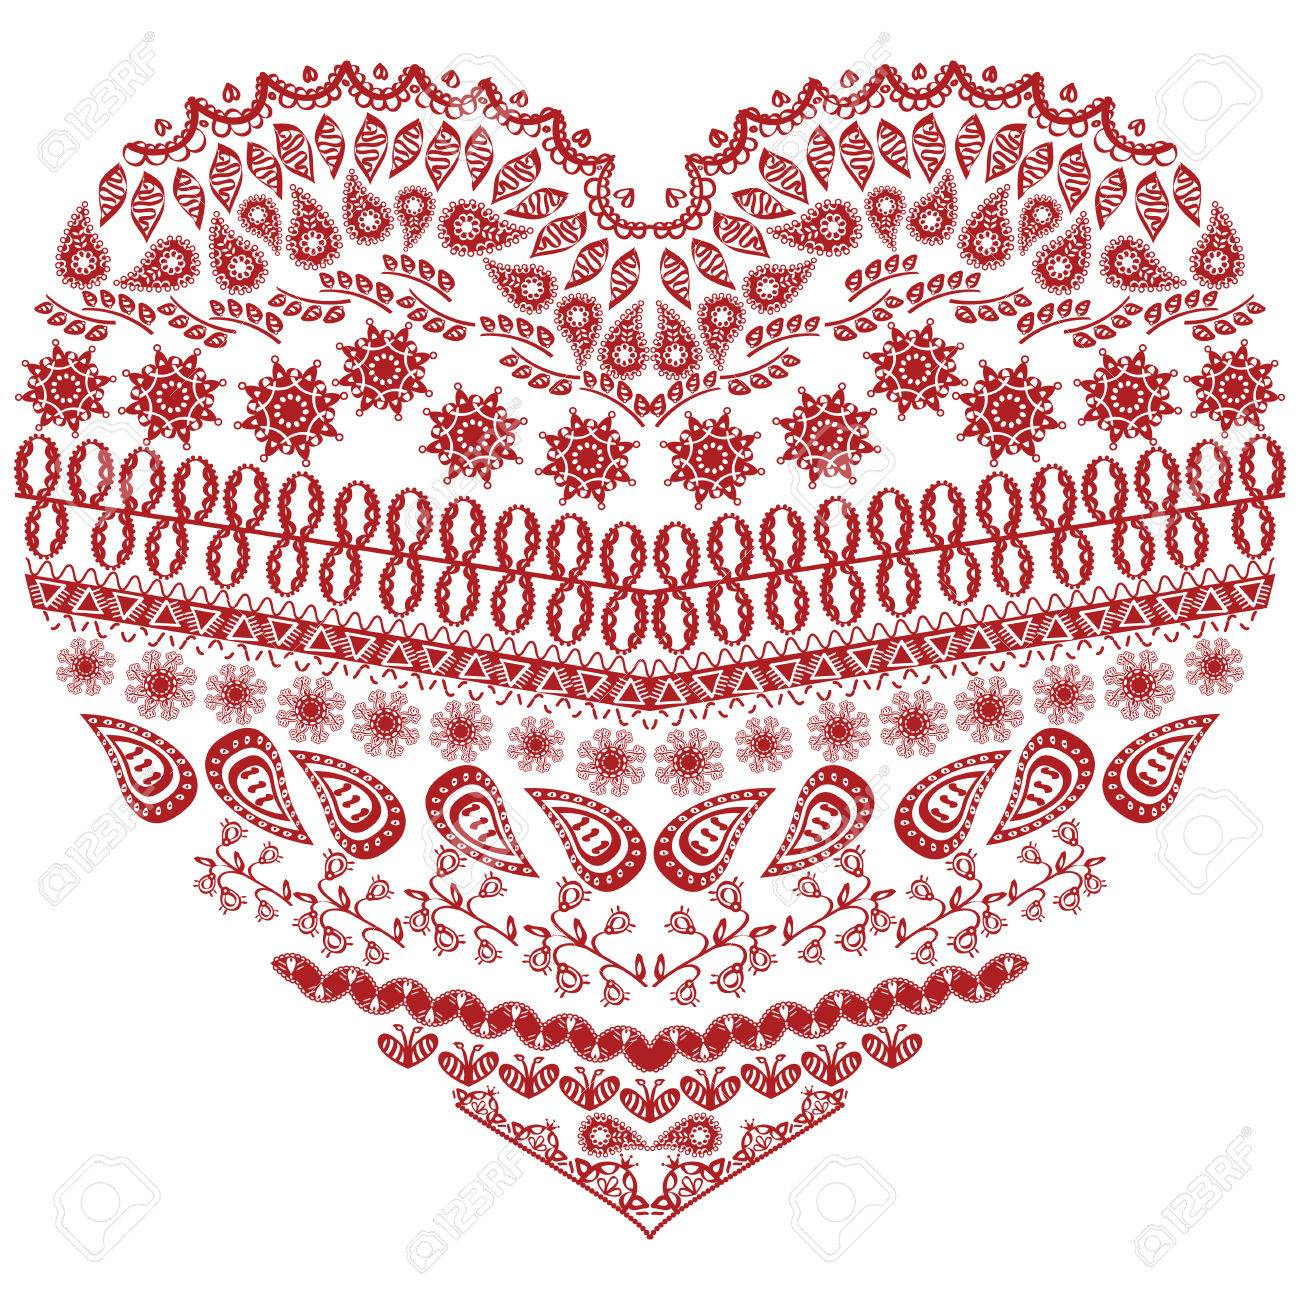 Tribal Zentangle Aztec Heart Shape With Floral Elements In Hand Drawing Lace Ornamental Style Red